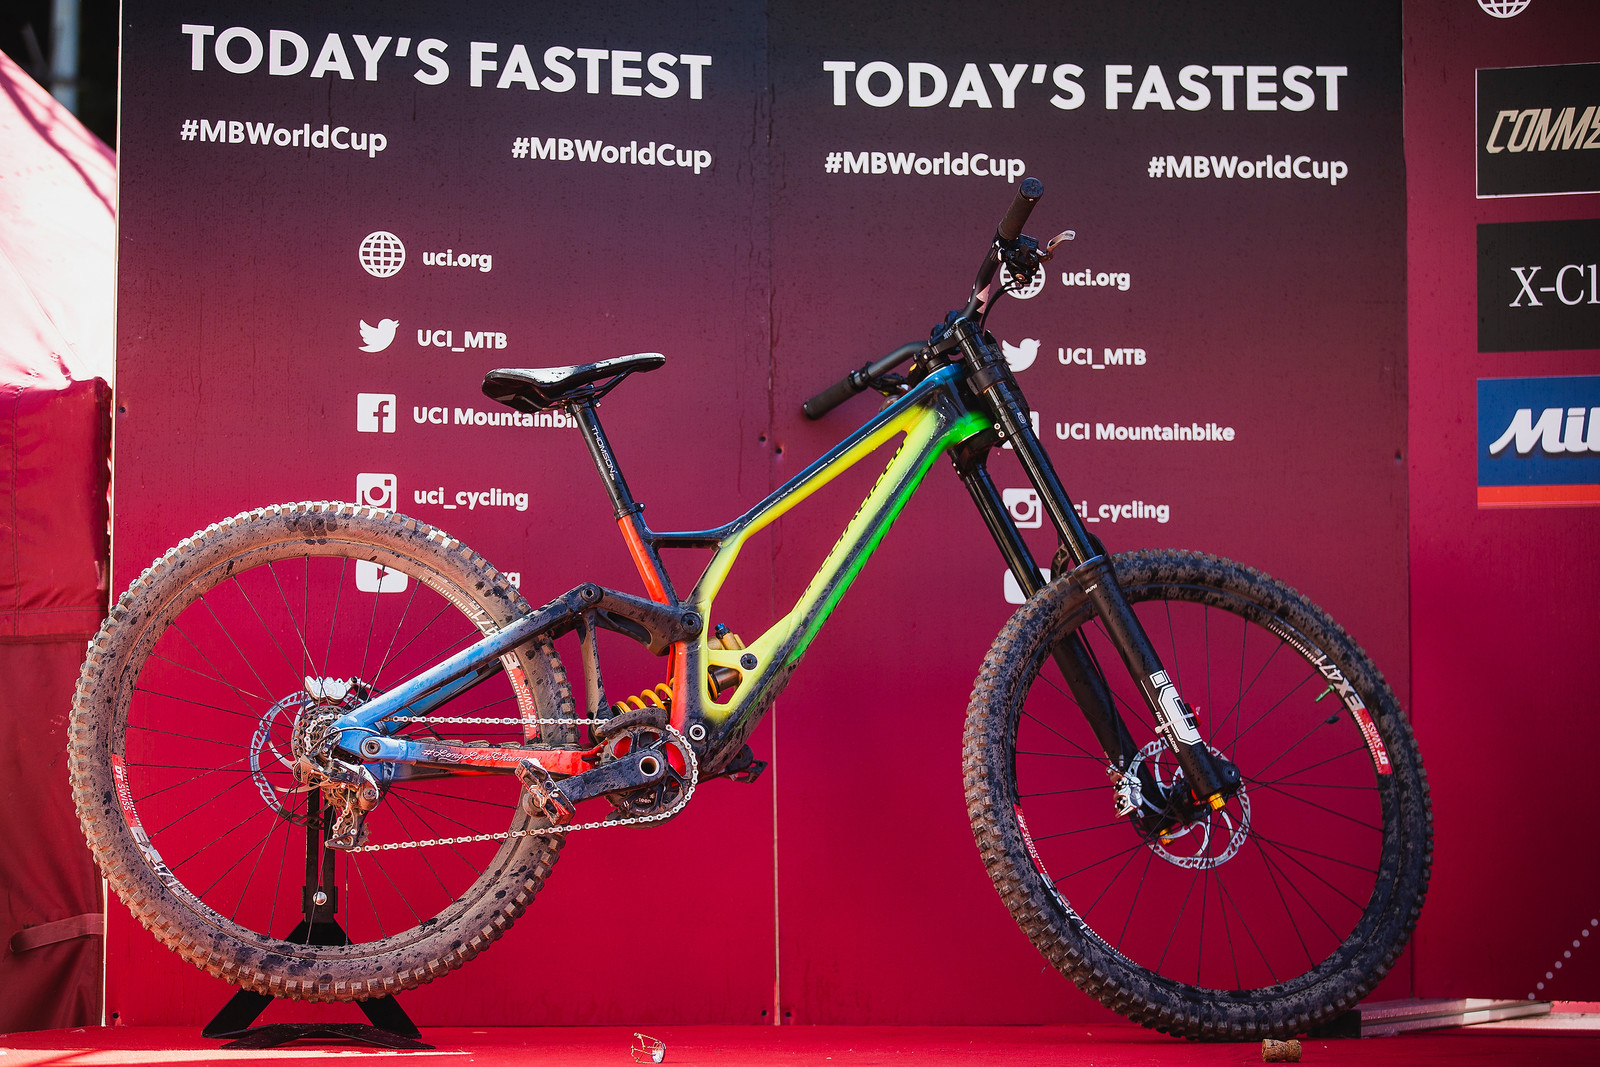 New paint for Loic this weekend, celebrating his 2018 World Champs win with a rainbow palette. All season Loic has been on an aluminum frame with 29-inch front wheel and 27.5-inch rear. He's also on aluminum DT Swiss ex471 rims with an inner width of 25mm; definitely narrower than what today's internet forums would define as acceptable. For Andorra it appears that he's running Maxxis Minion DHR II tires - 29-inch front, 27.5 rear. Specialized doesn't make a DH-casing 29-inch tire, so Loic and Finn have been running unlabeled tires this season and continue to cover the SRAM logo on the crank with electrical tape as there is no official support deal for the team.